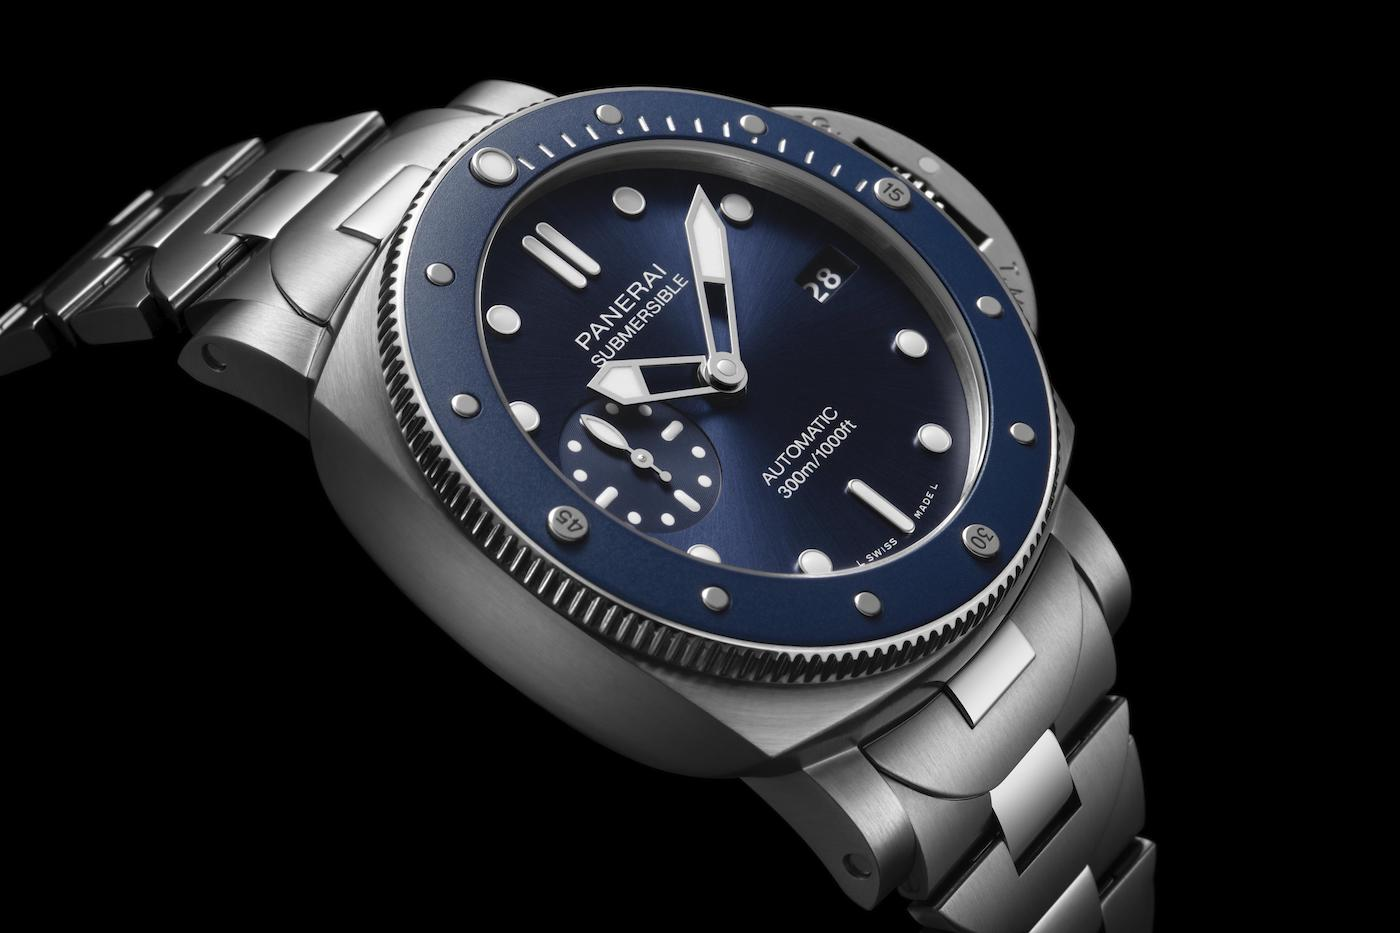 Panerai releases a new Submersible model with a metal bracelet